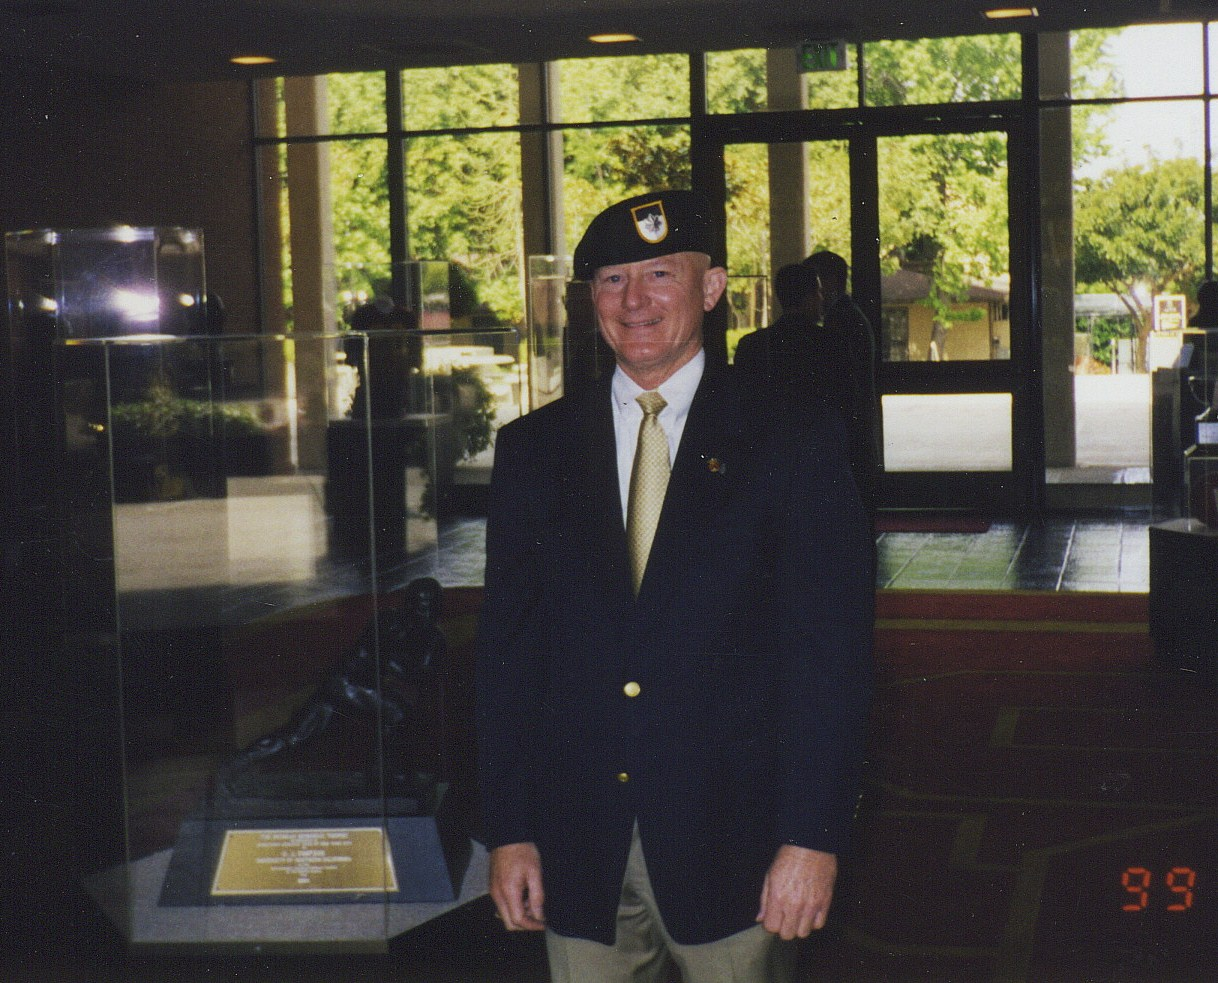 Lonny Holmes Wearing LTC Wm Taylors Beret Standing Adjacent to Heisman Trophy of O.J. Simpson in USC\'s Heritage Hall